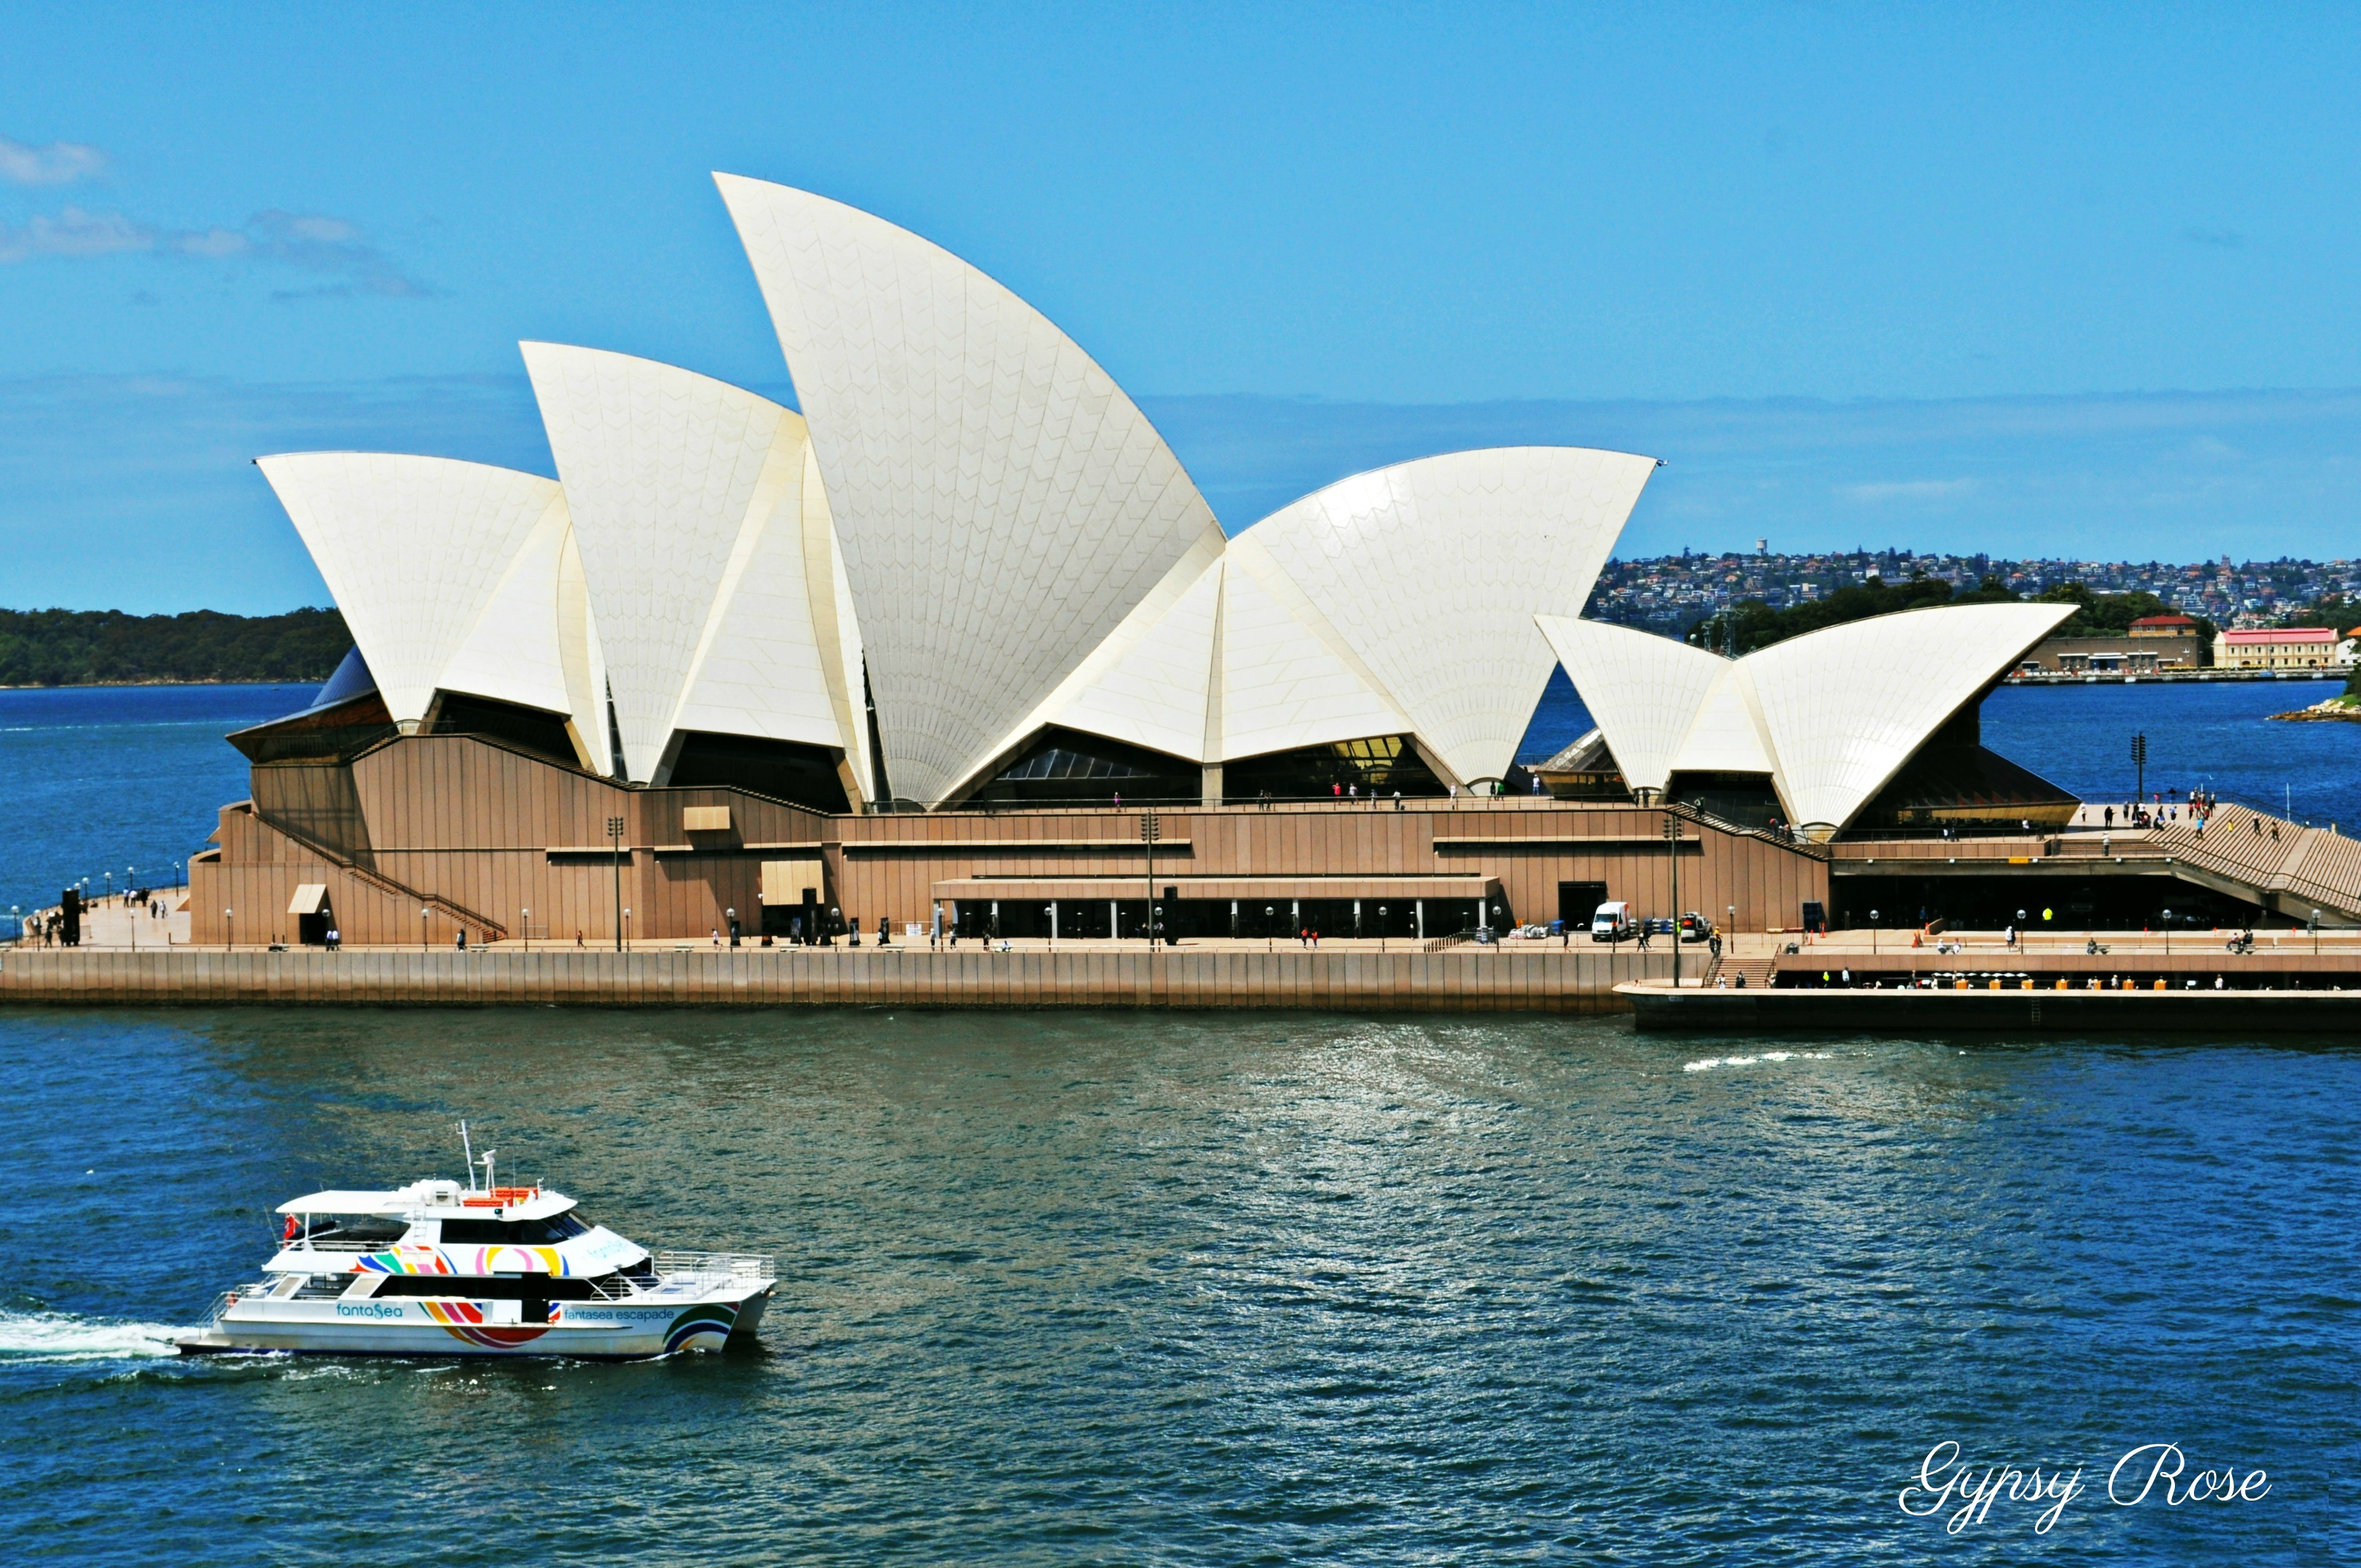 sydney opera house iconic attractions sydney attra31 - Download Image Of The Sydney Opera House  Background